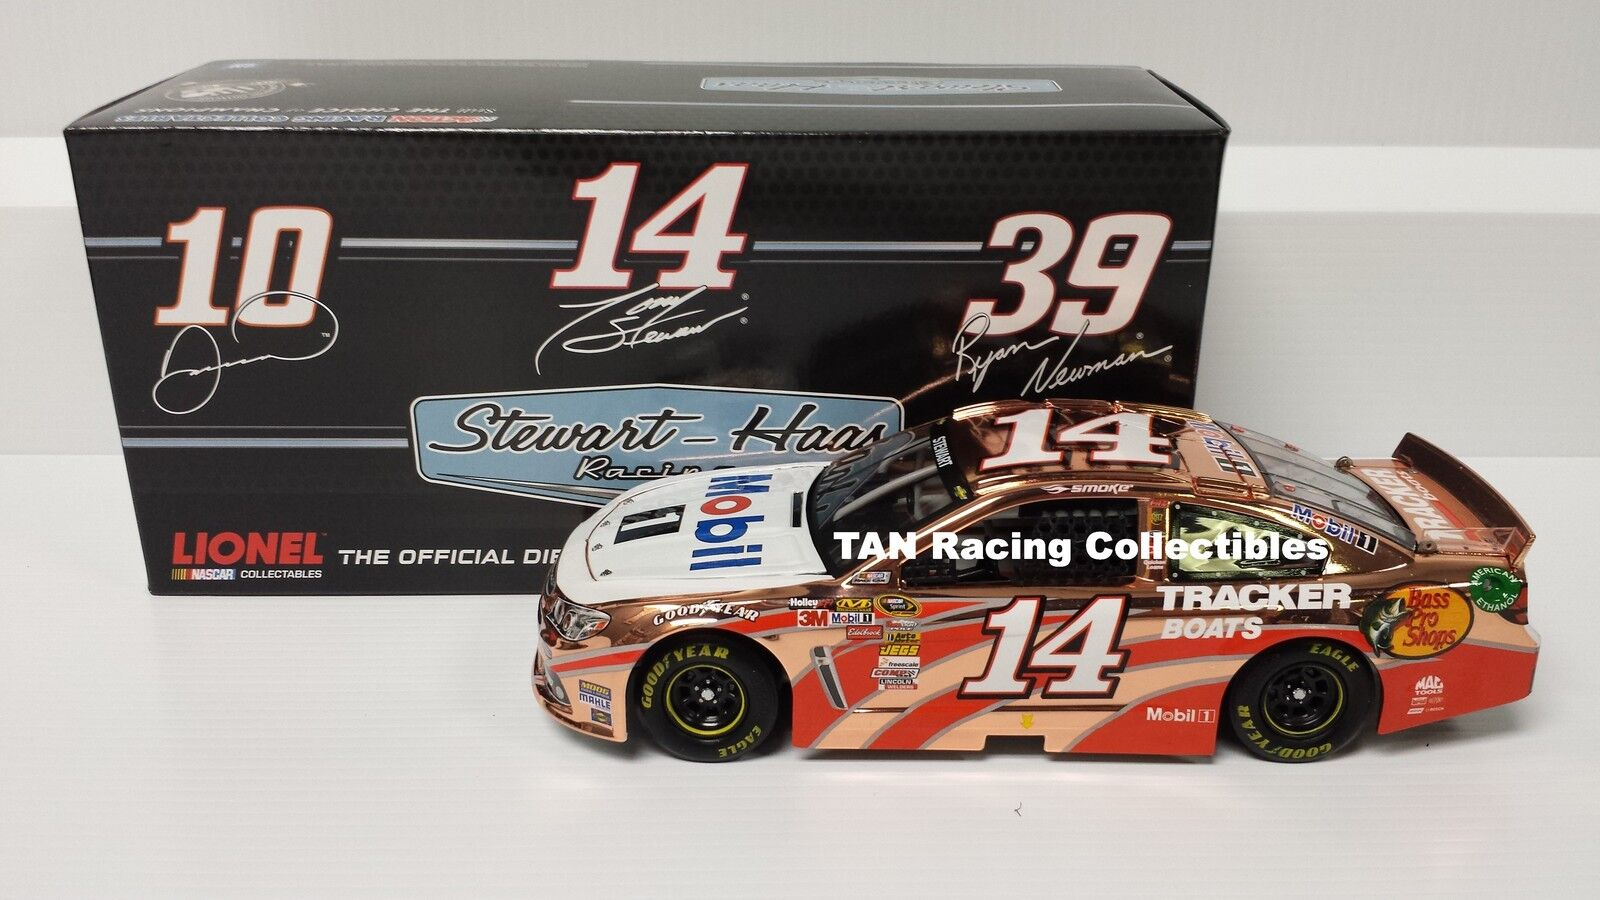 Tony Stewart 2013 Lionel/Action #14 Mobil 1 COPPER 1/24 FREE SHIP